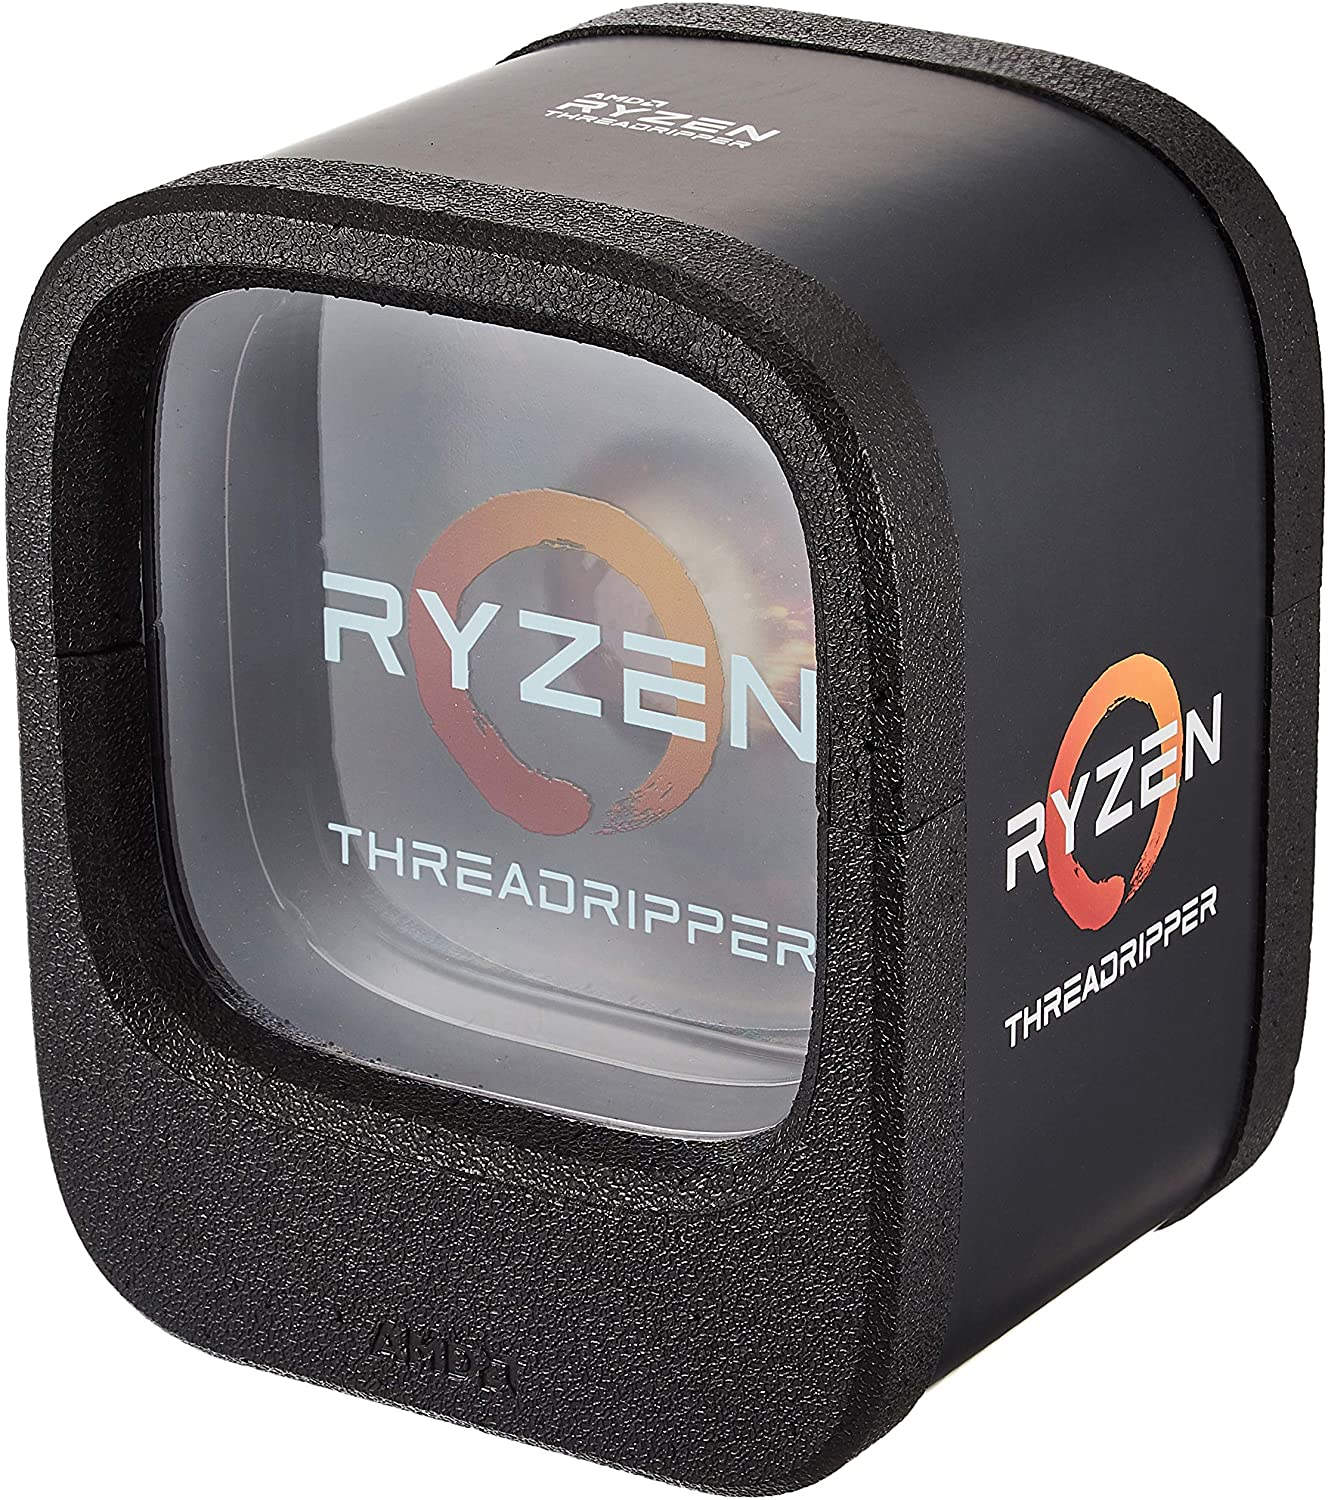 AMD Ryzen Threadripper 1900X (8-core/16-thread) Desktop Processor (YD190XA8AEWOF)